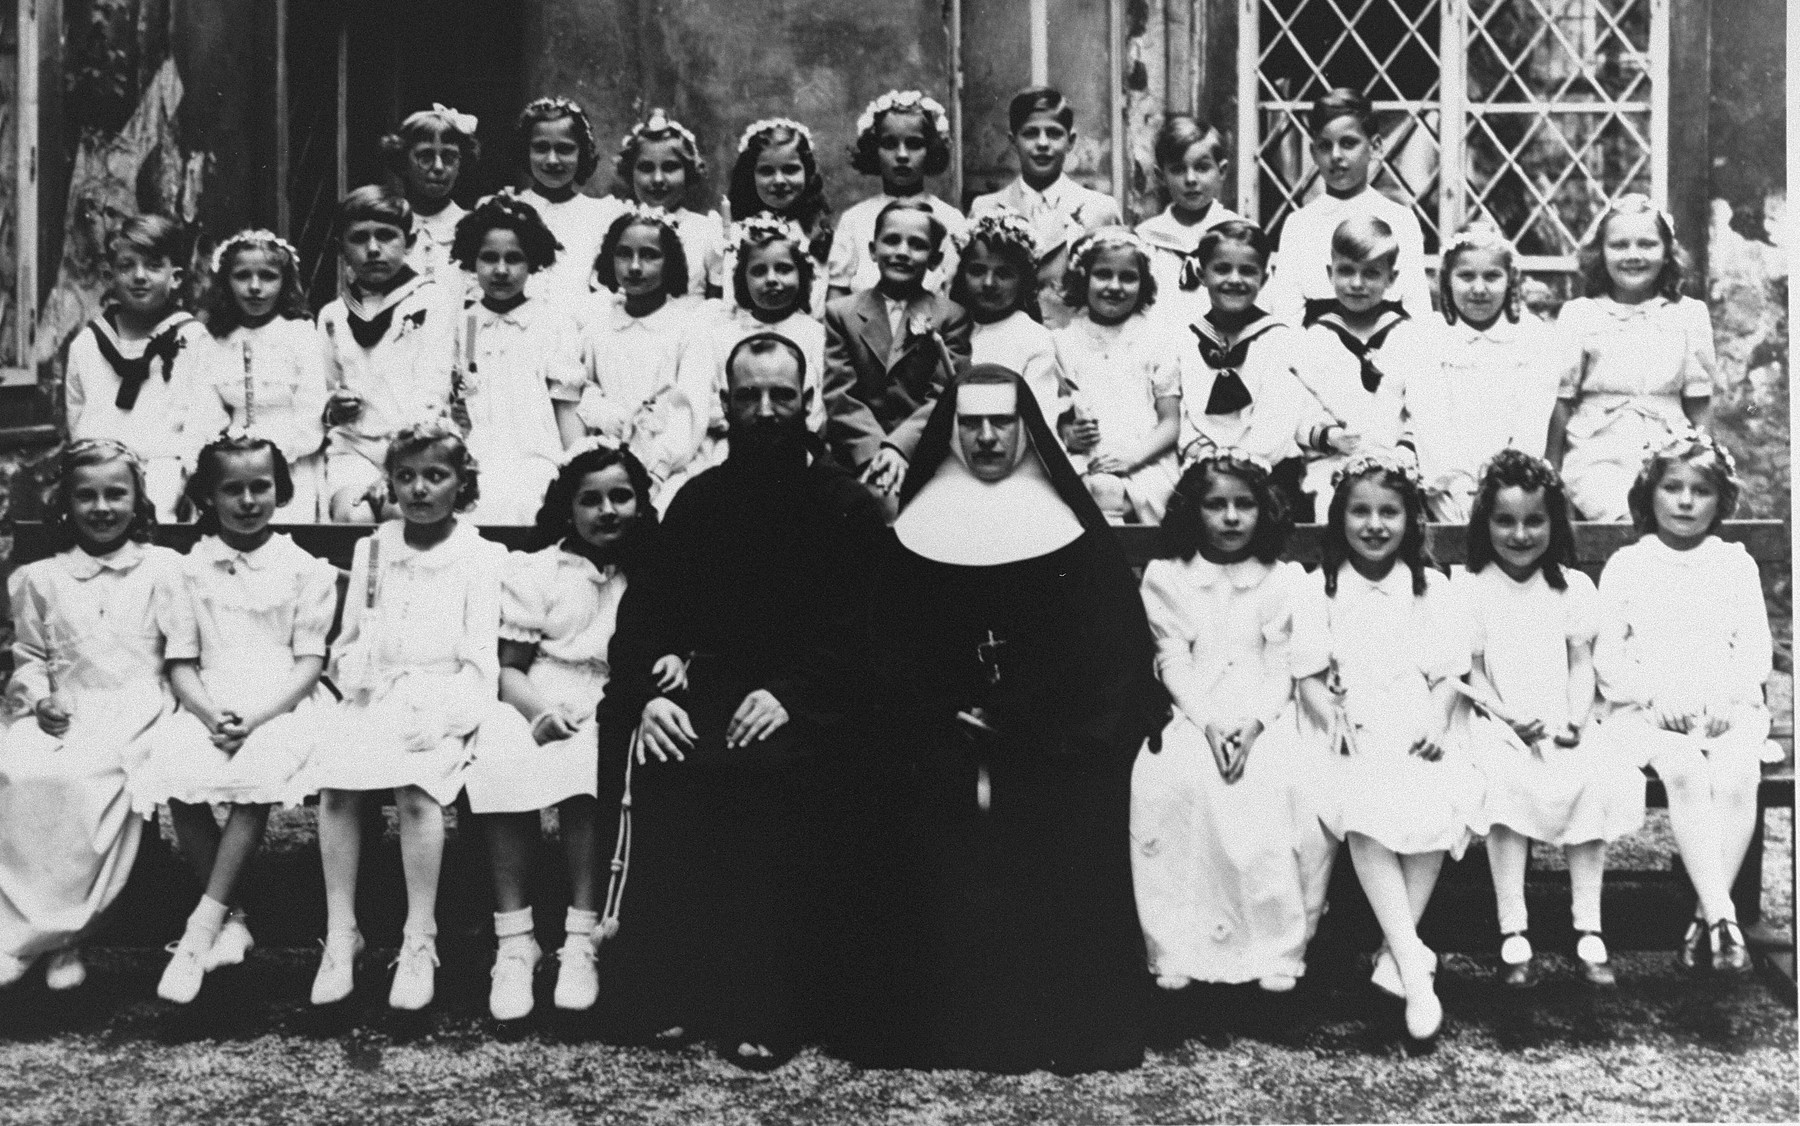 Group portrait of teachers and students in a first communion class at the Ursulinen convent school in Vienna.    Among those pictured is Romana Schreier, a Jewish girl who survived the war in hiding.